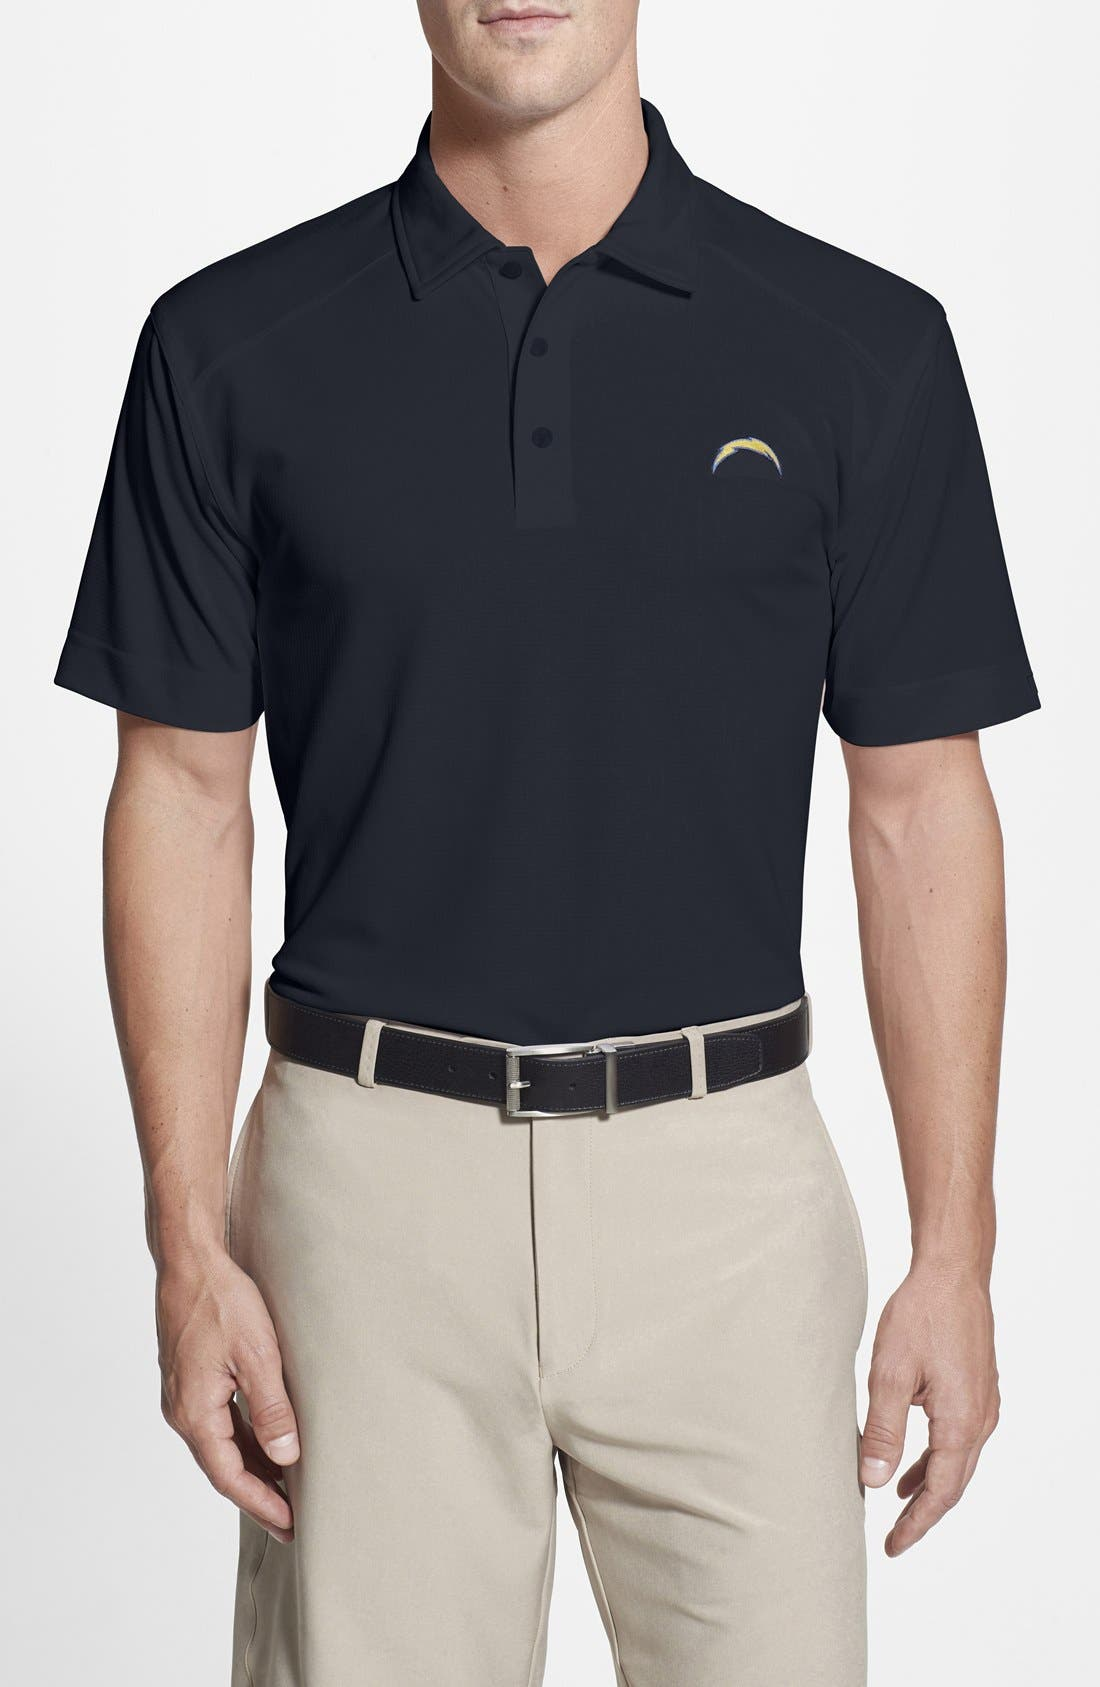 Cutter & Buck 'San Diego Chargers - Genre' DryTec Moisture Wicking Polo (Big & Tall)